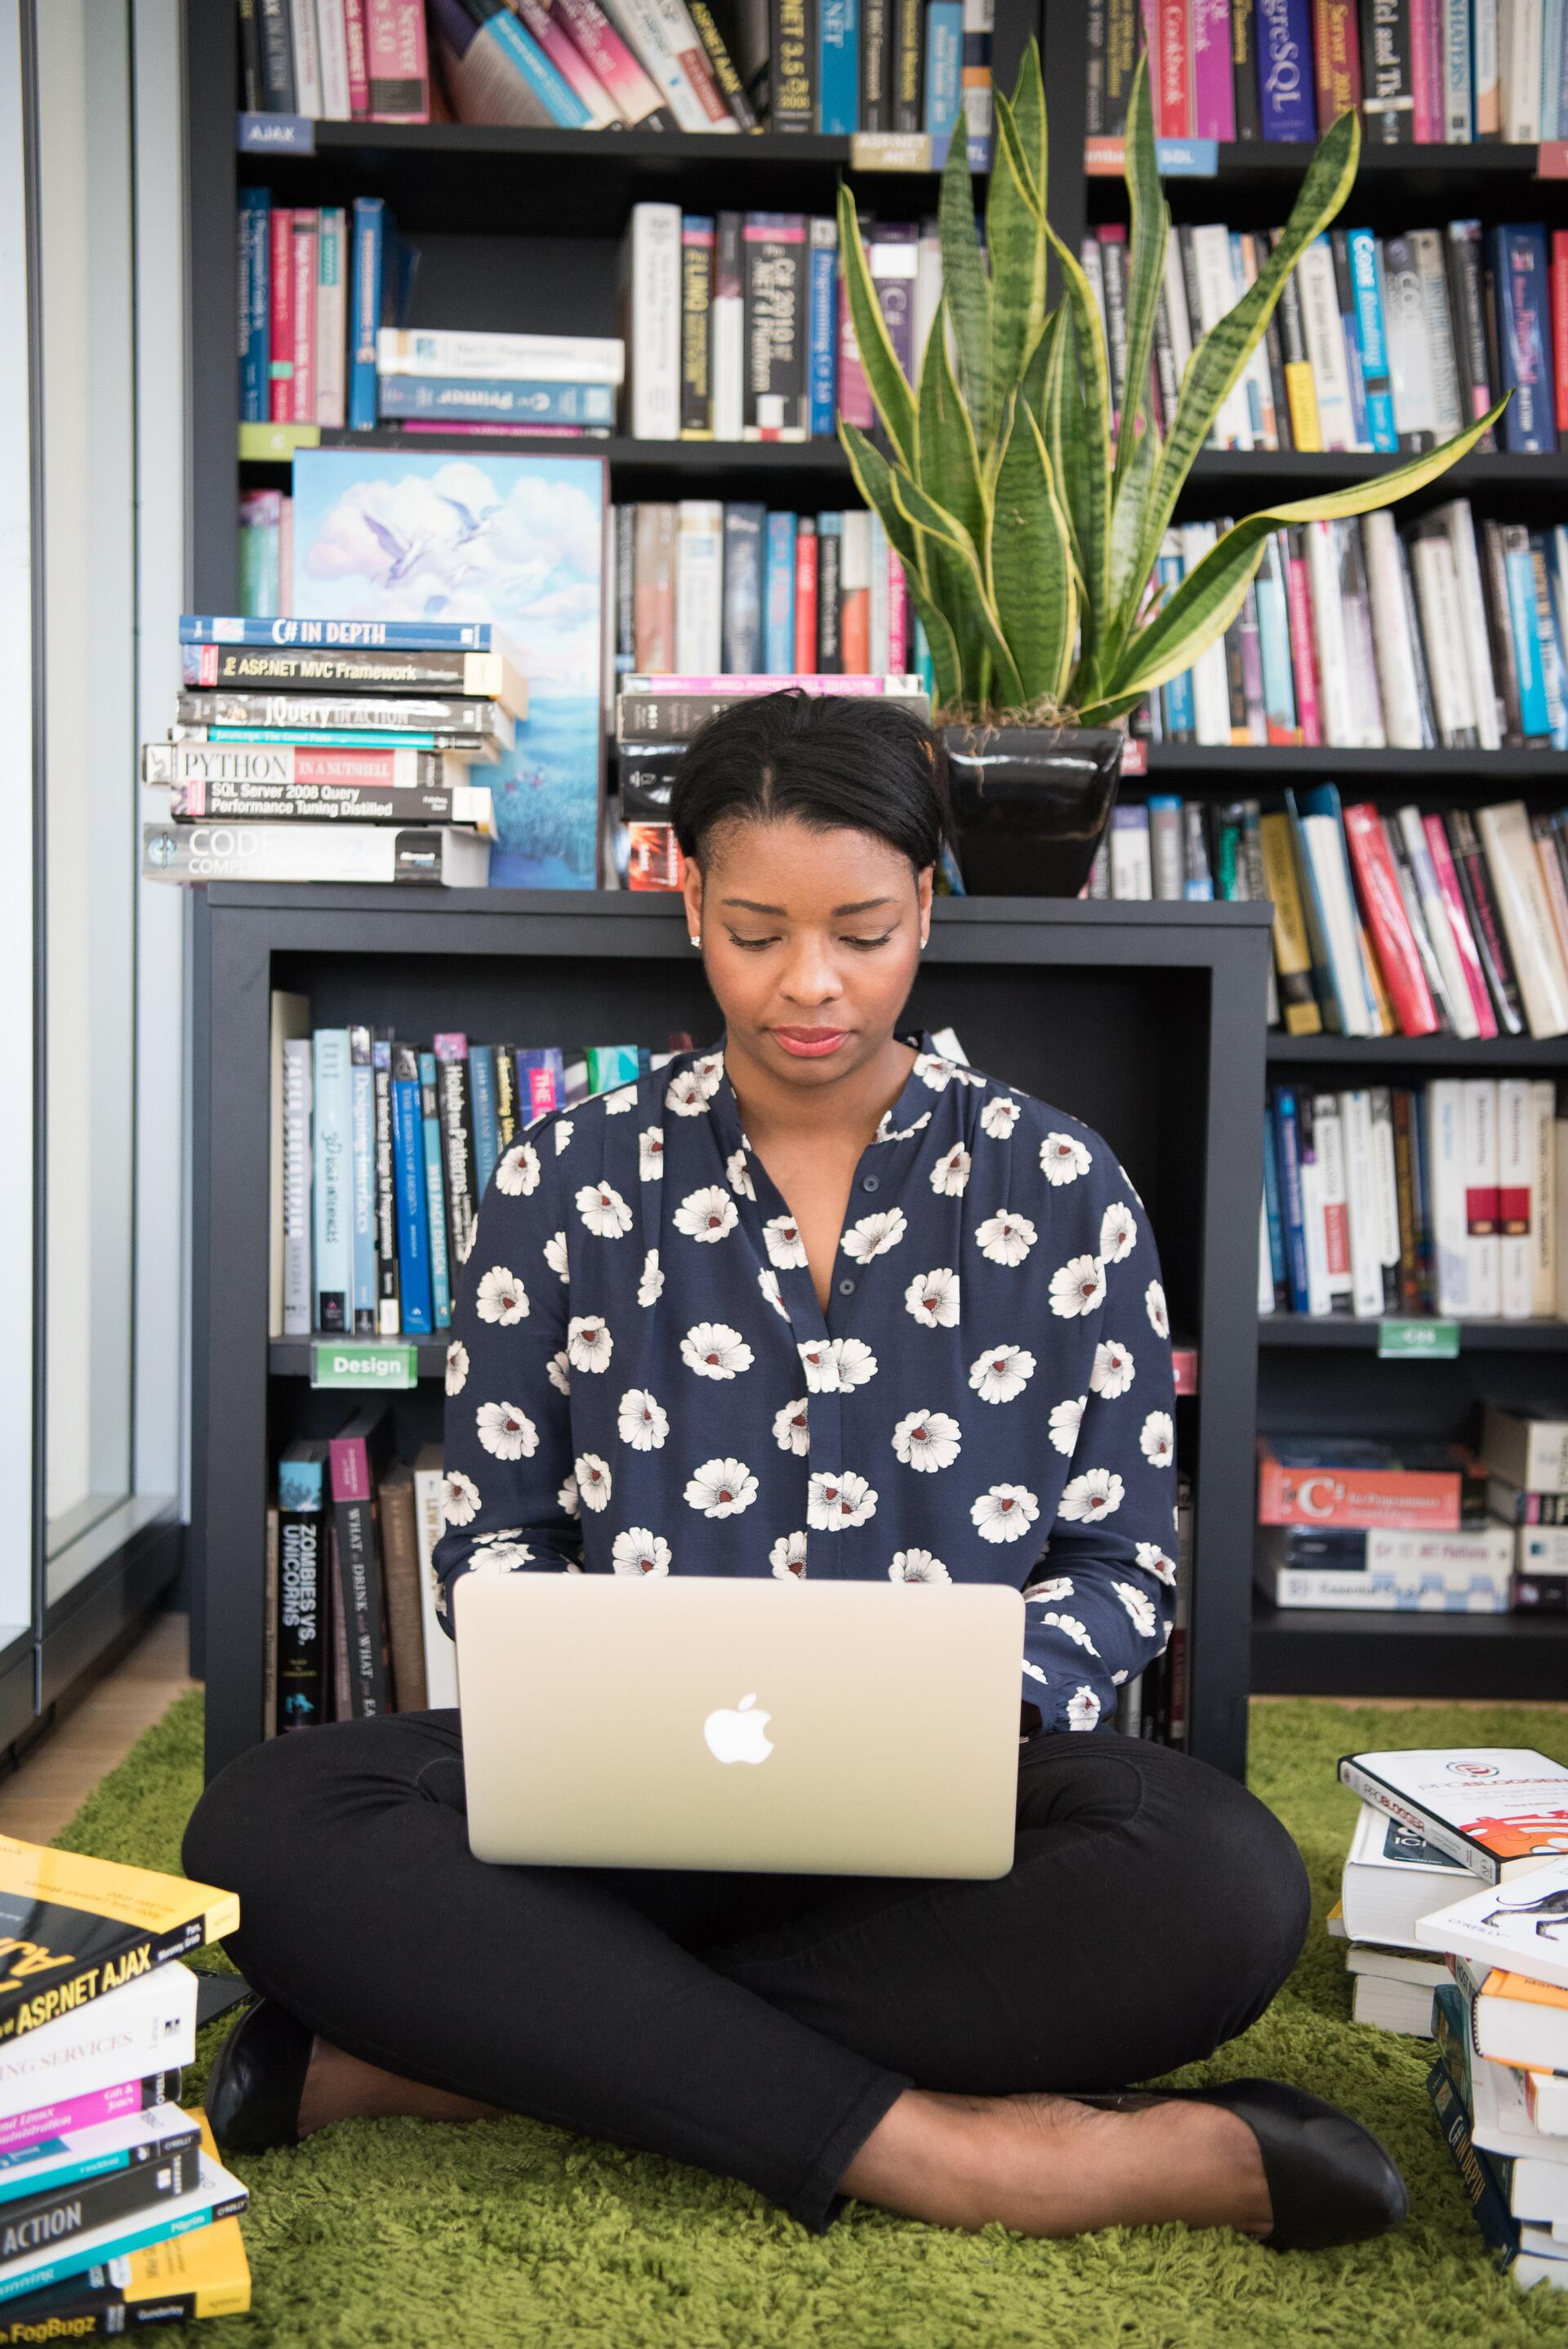 Woman on Mac in front of bookcase